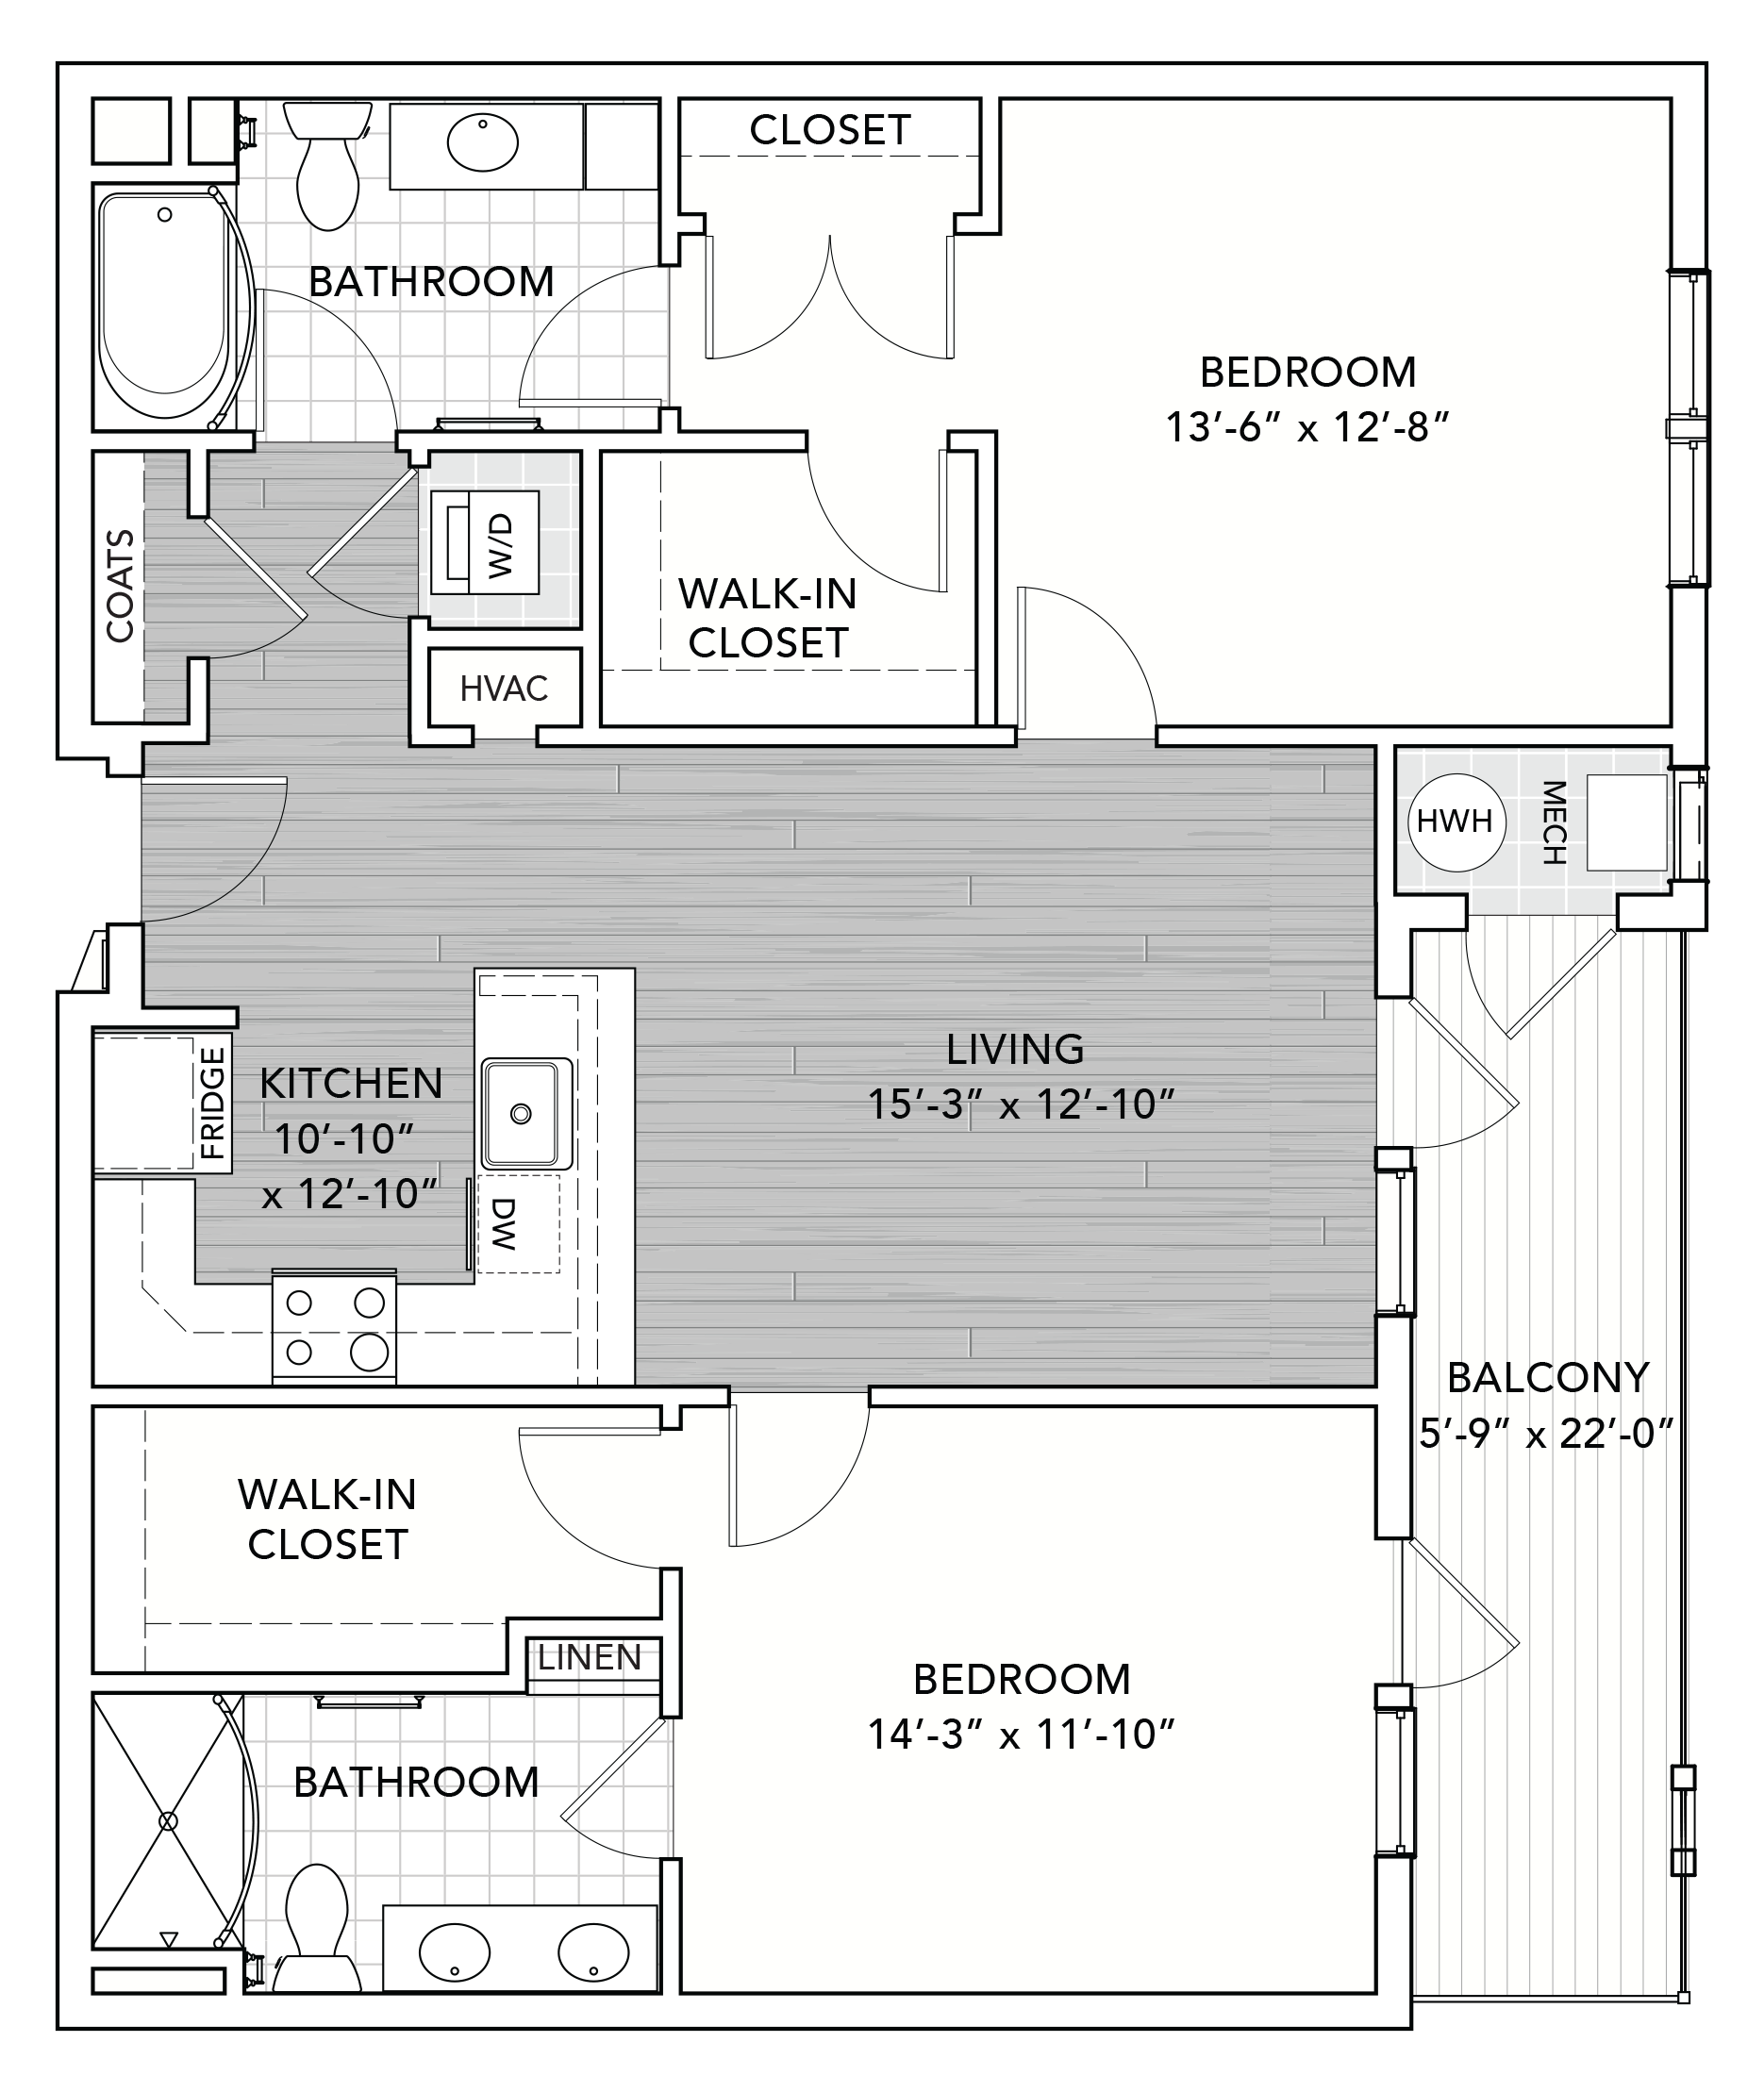 P0655013 parksquare b1 1166 2 floorplan